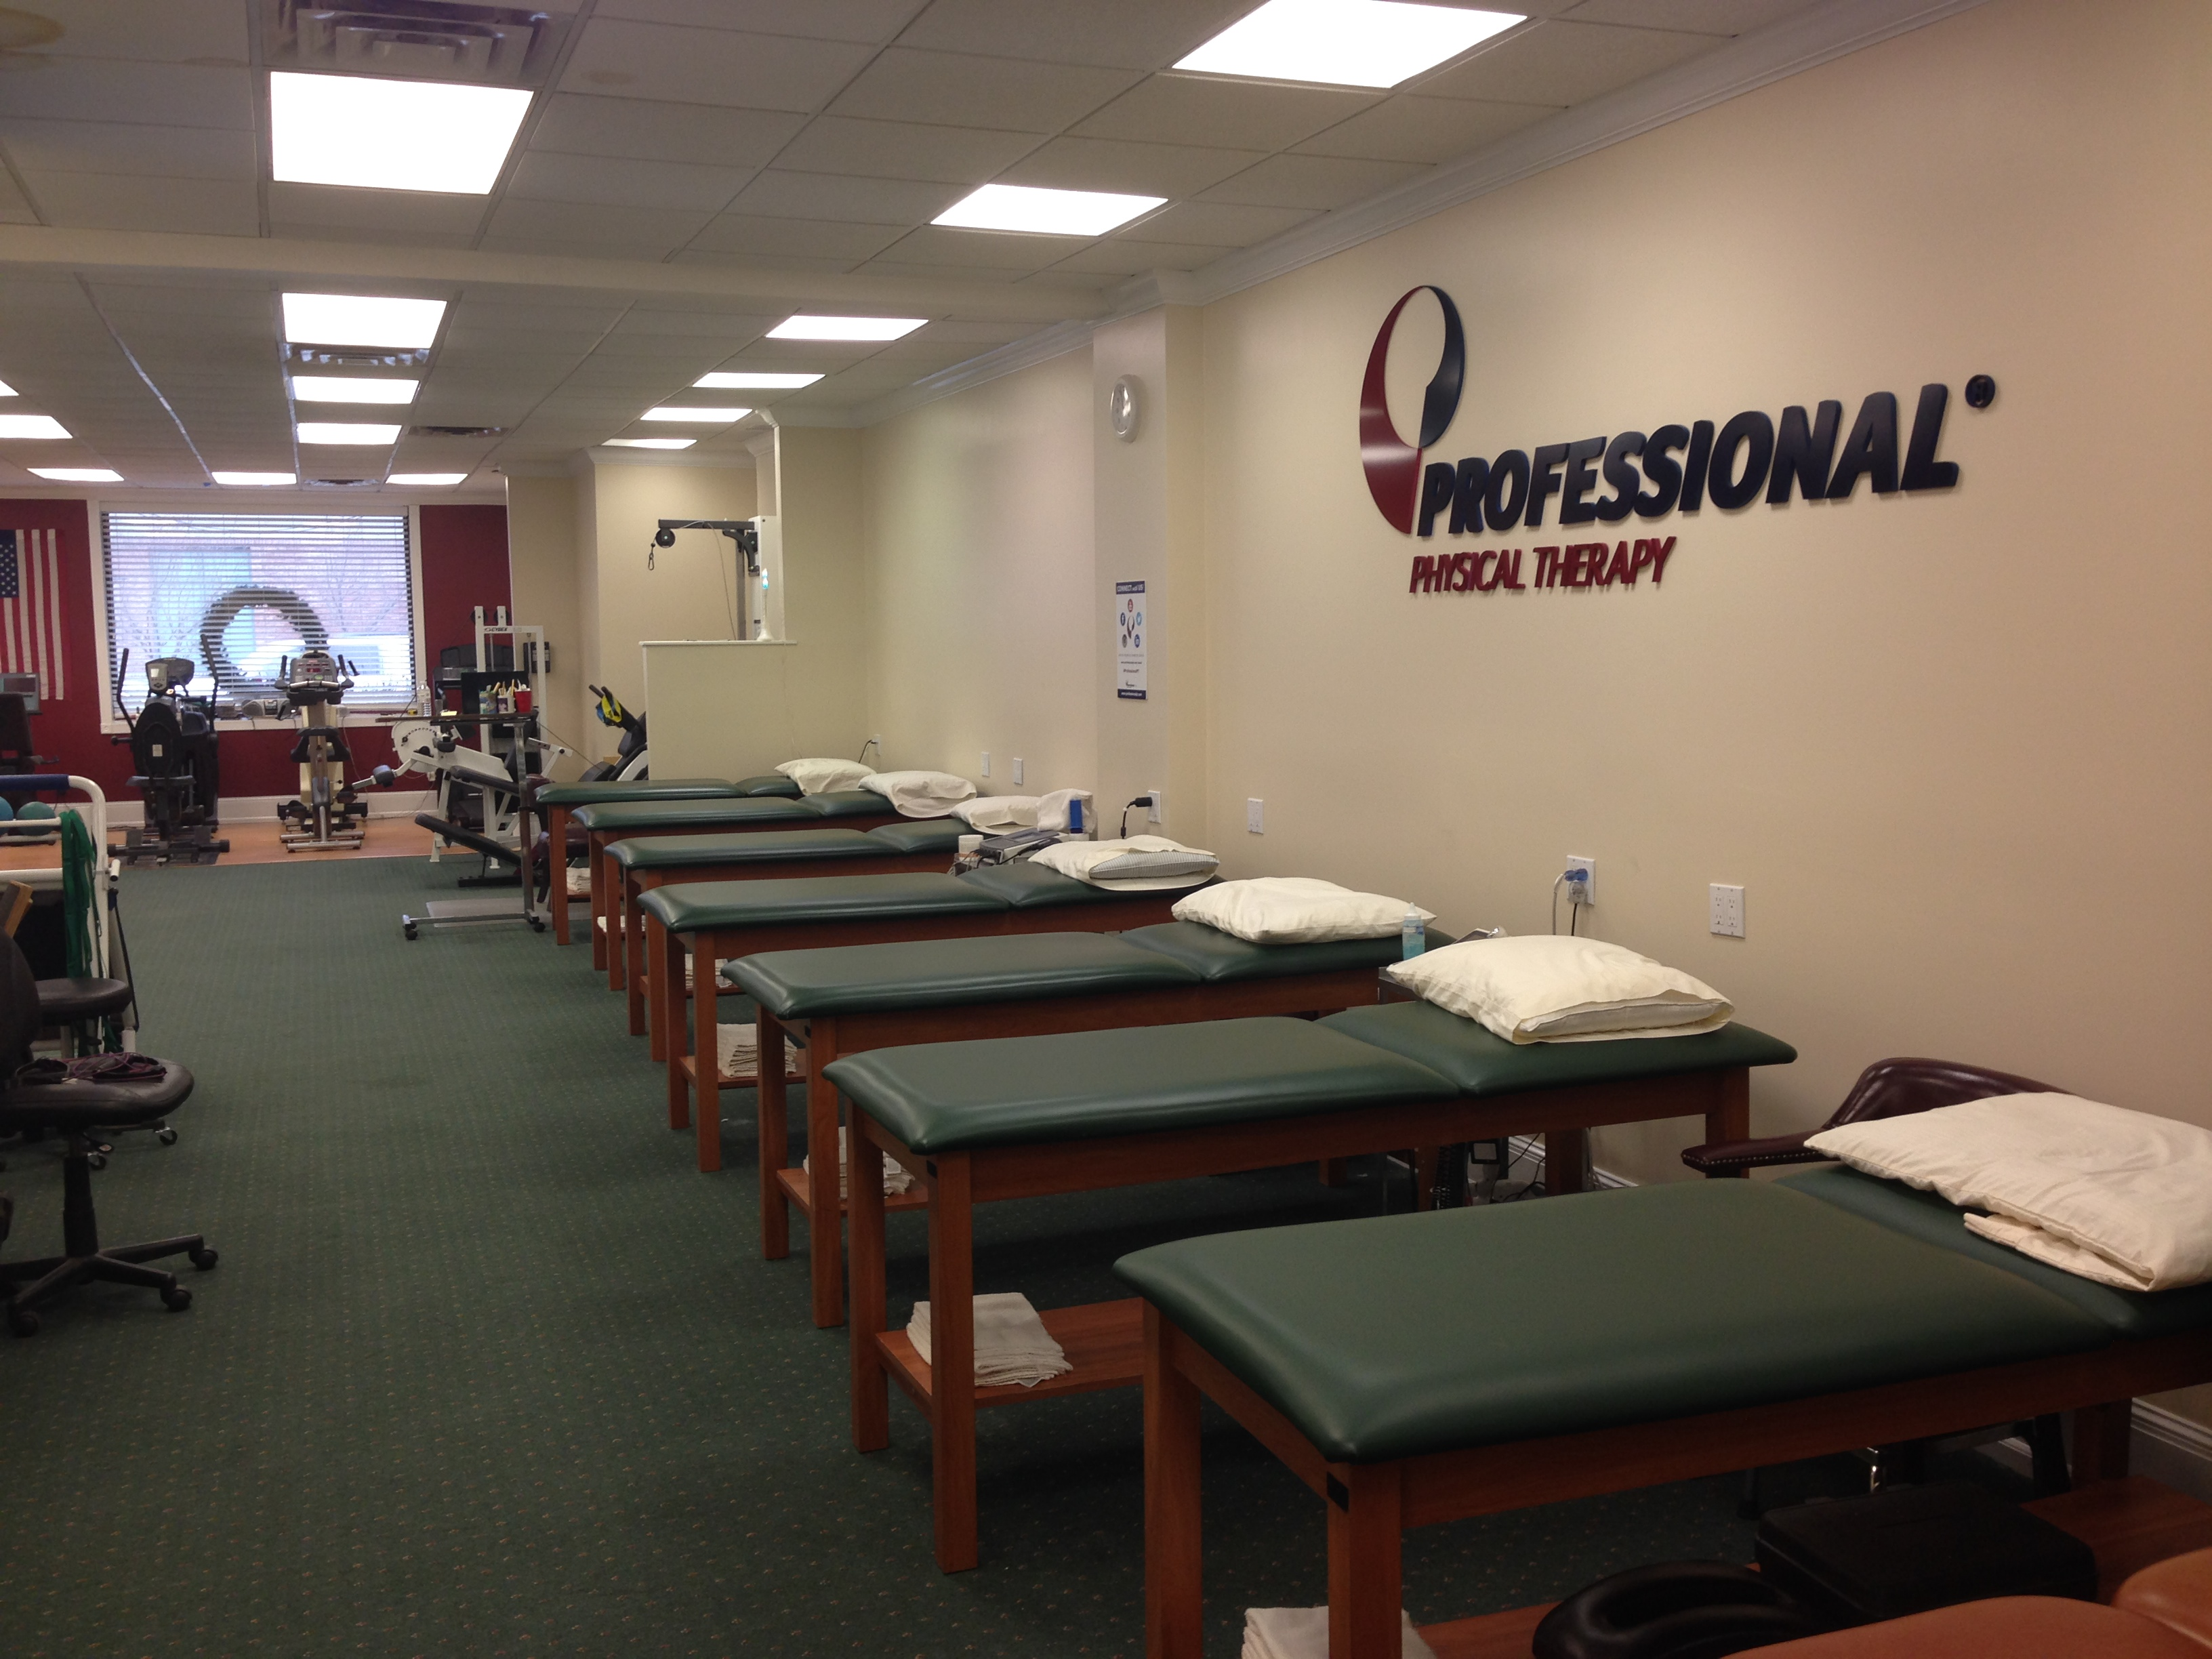 Professional Physical Therapy In Greenlawn Ny 11740